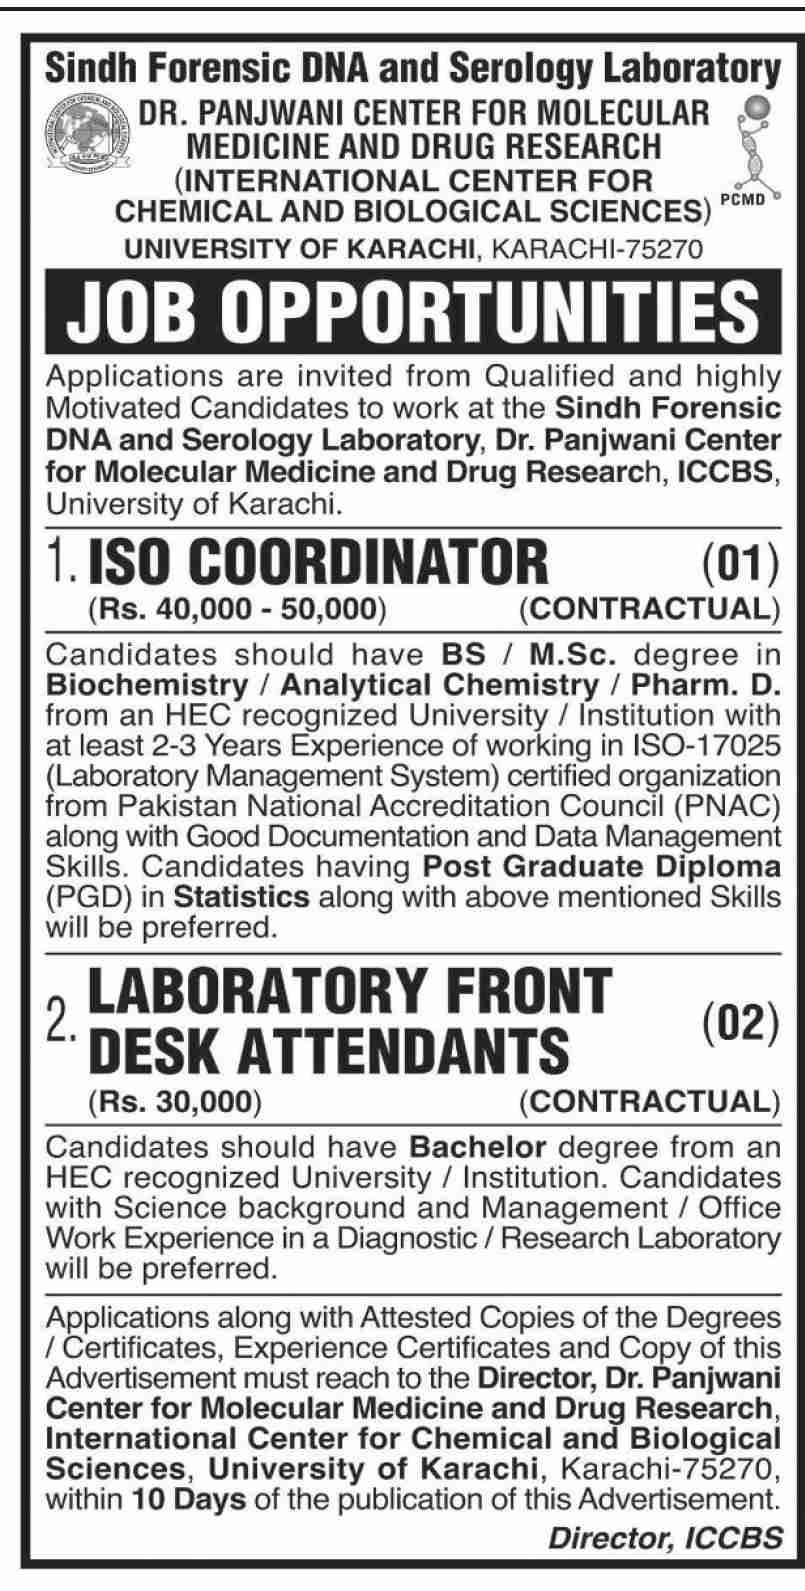 Sindh Forensic DNA and Serology Laboratory UK Jobs June 2021